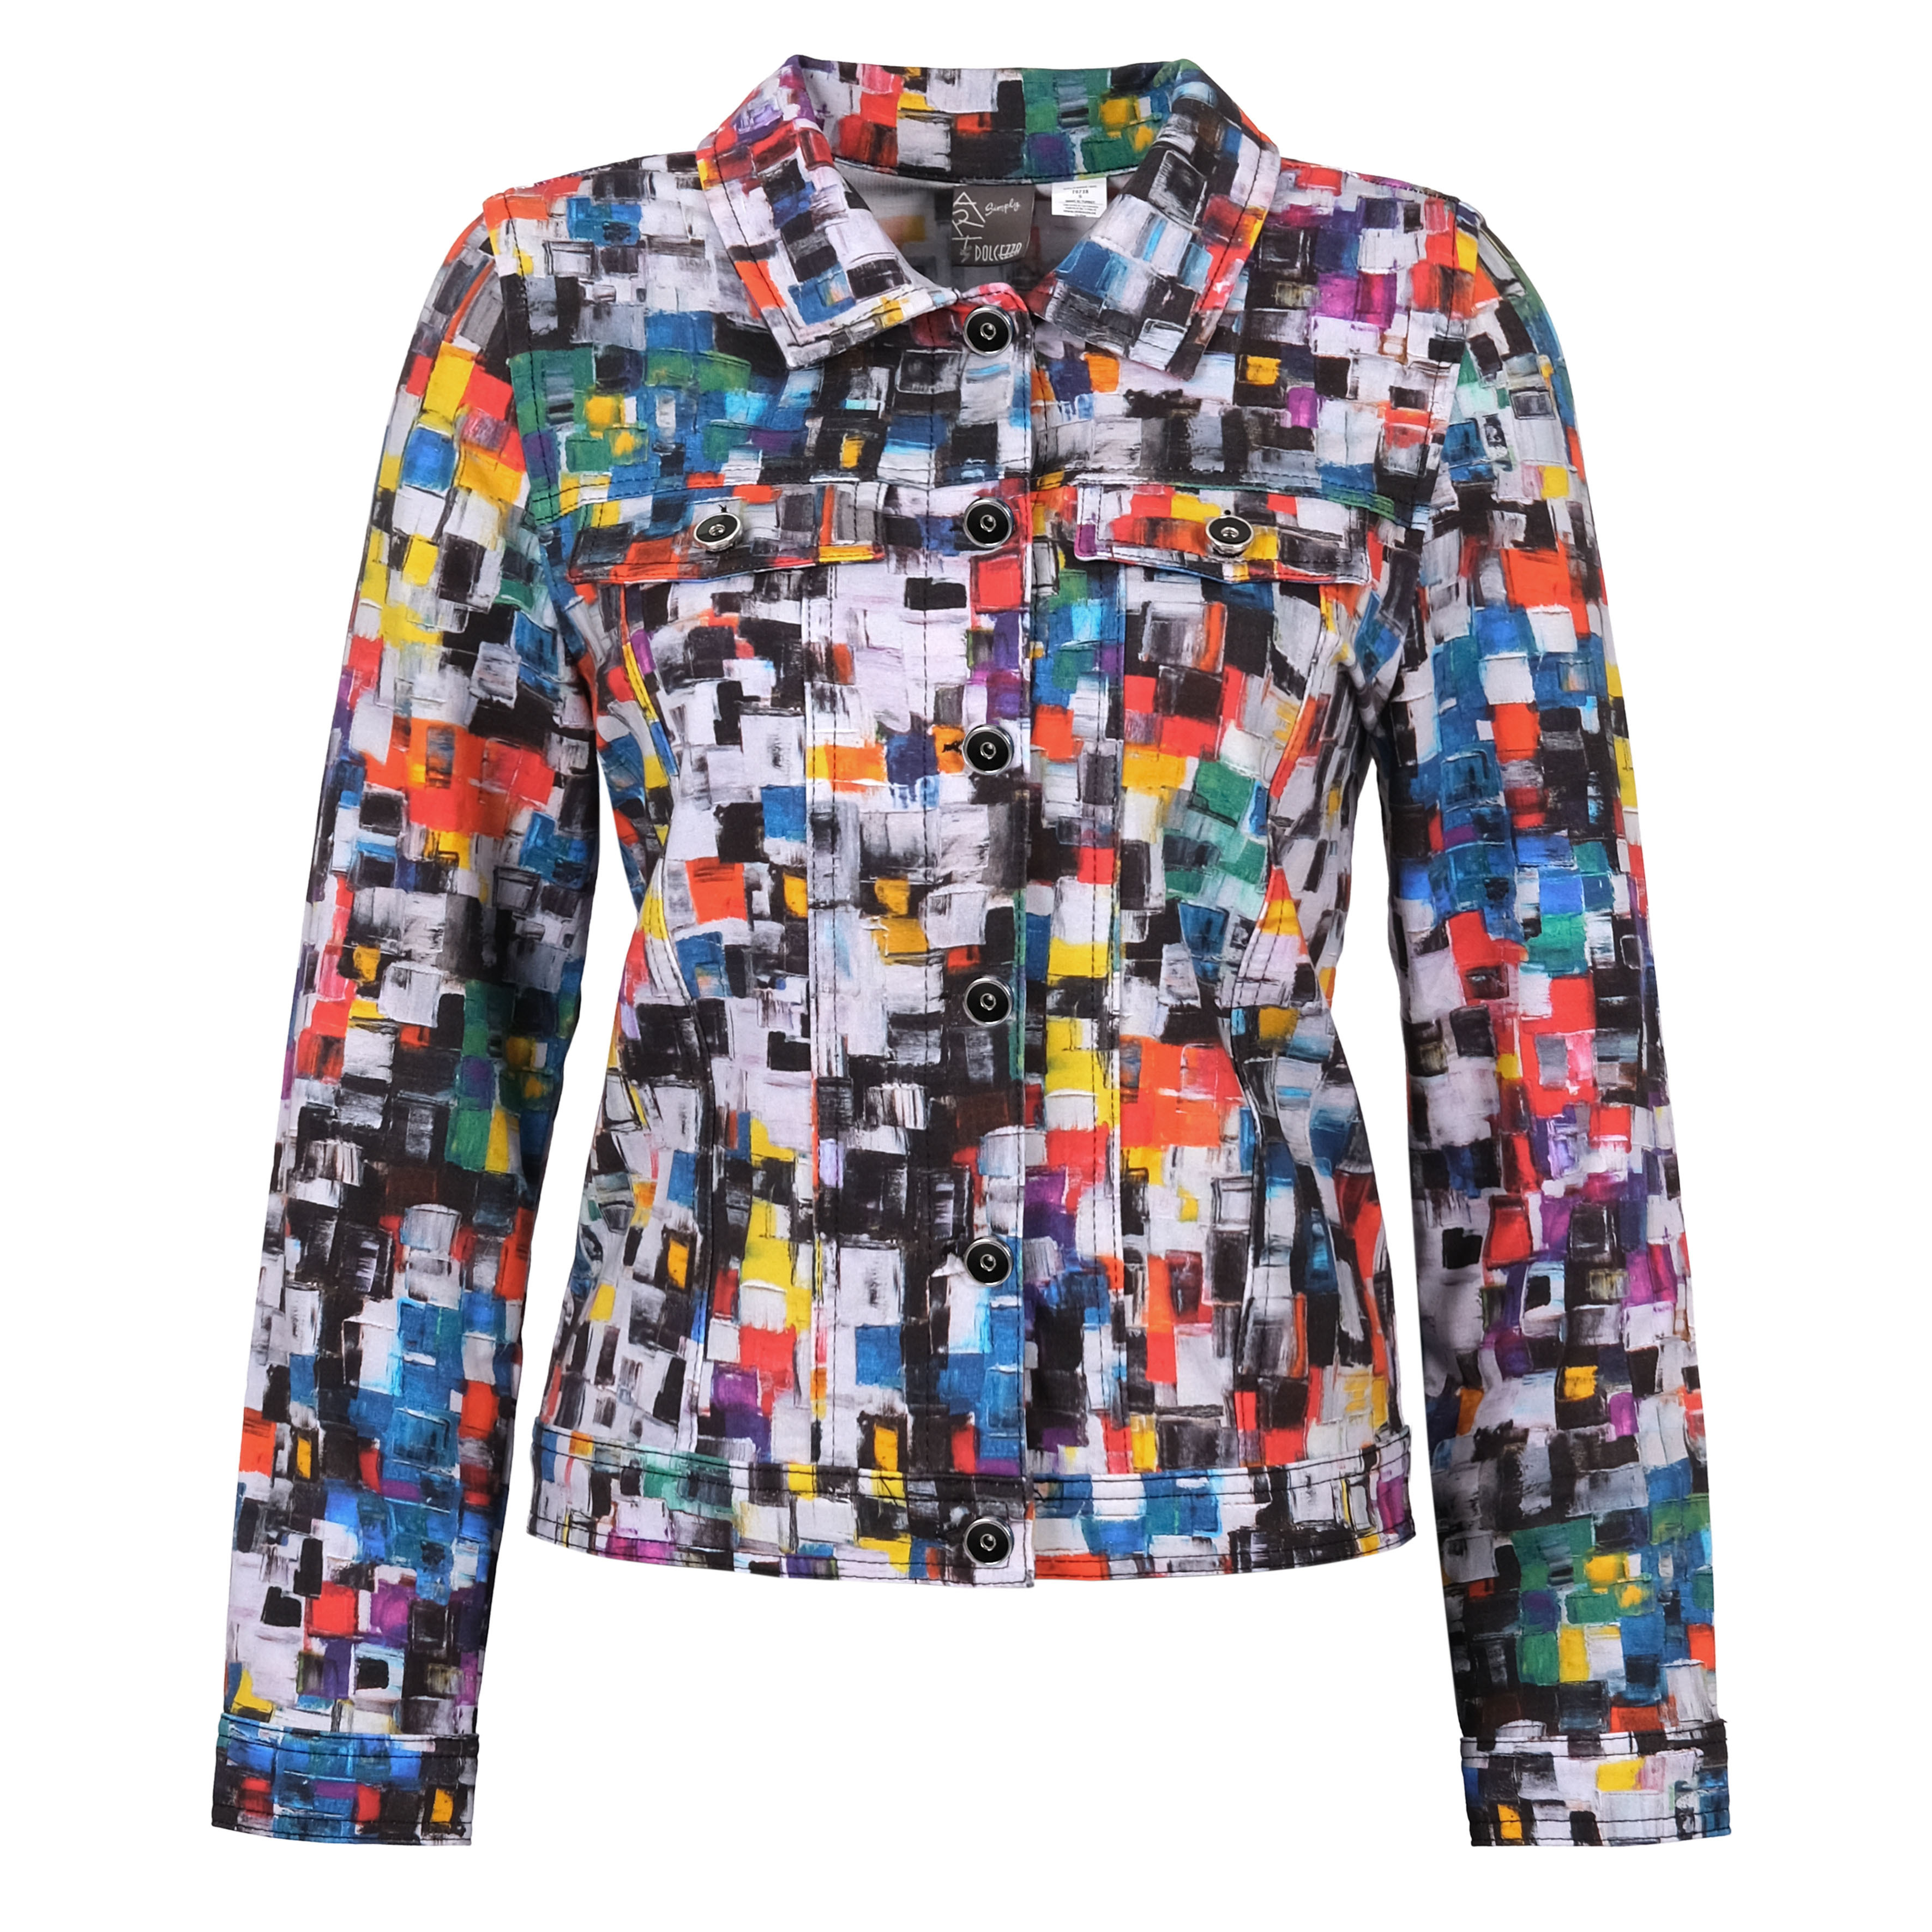 Simply Art Dolcezza: Heads Up In Color Abstract art Denim Jacket DOLCEZZA_SIMPLYART_70728